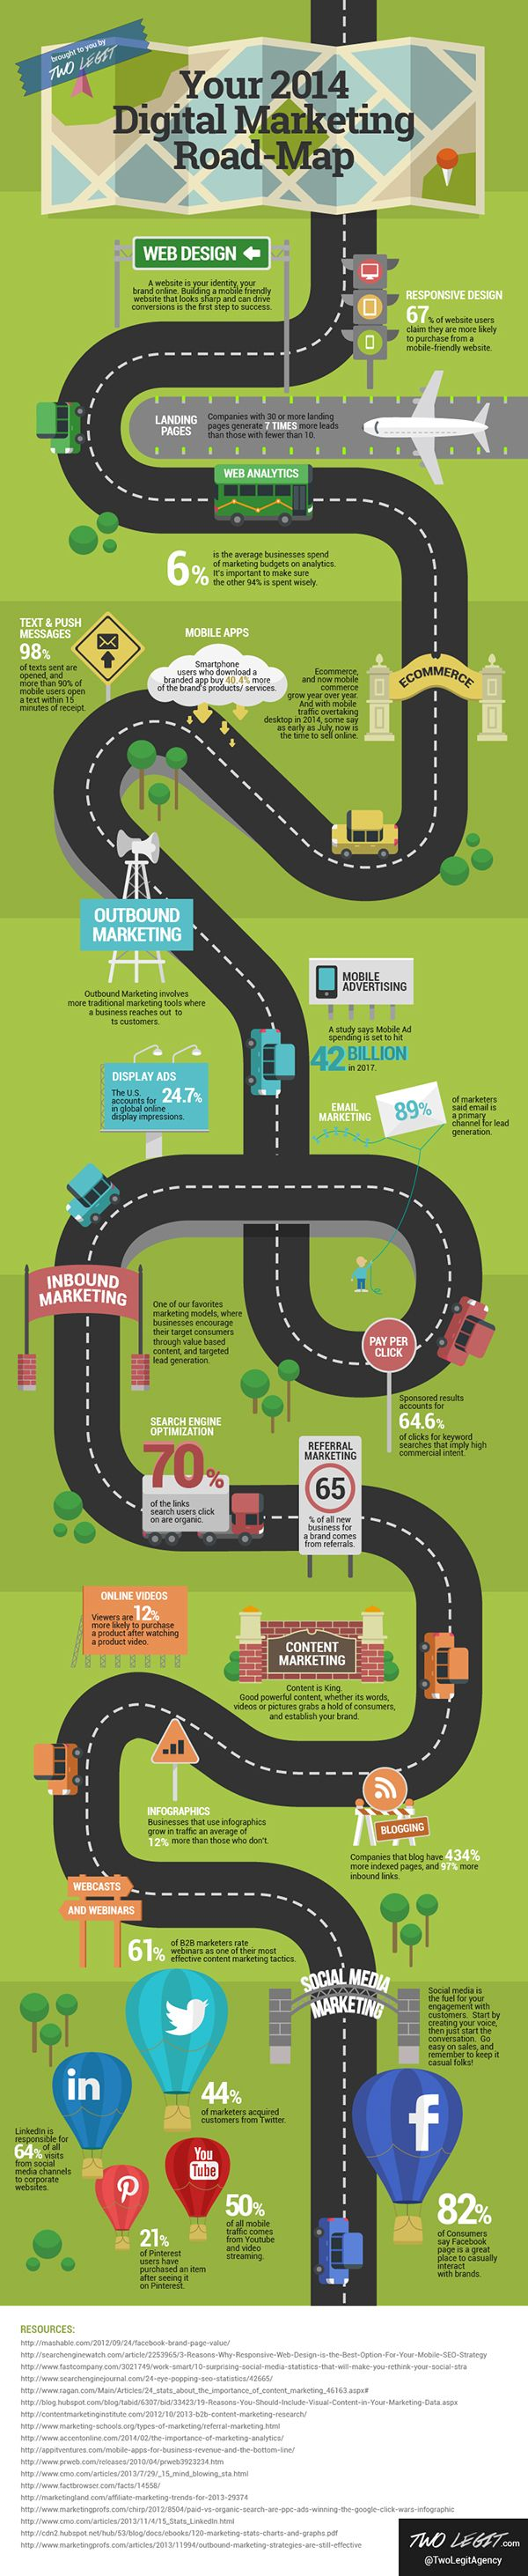 Digital Marketing Road-Map Infographic on Behance